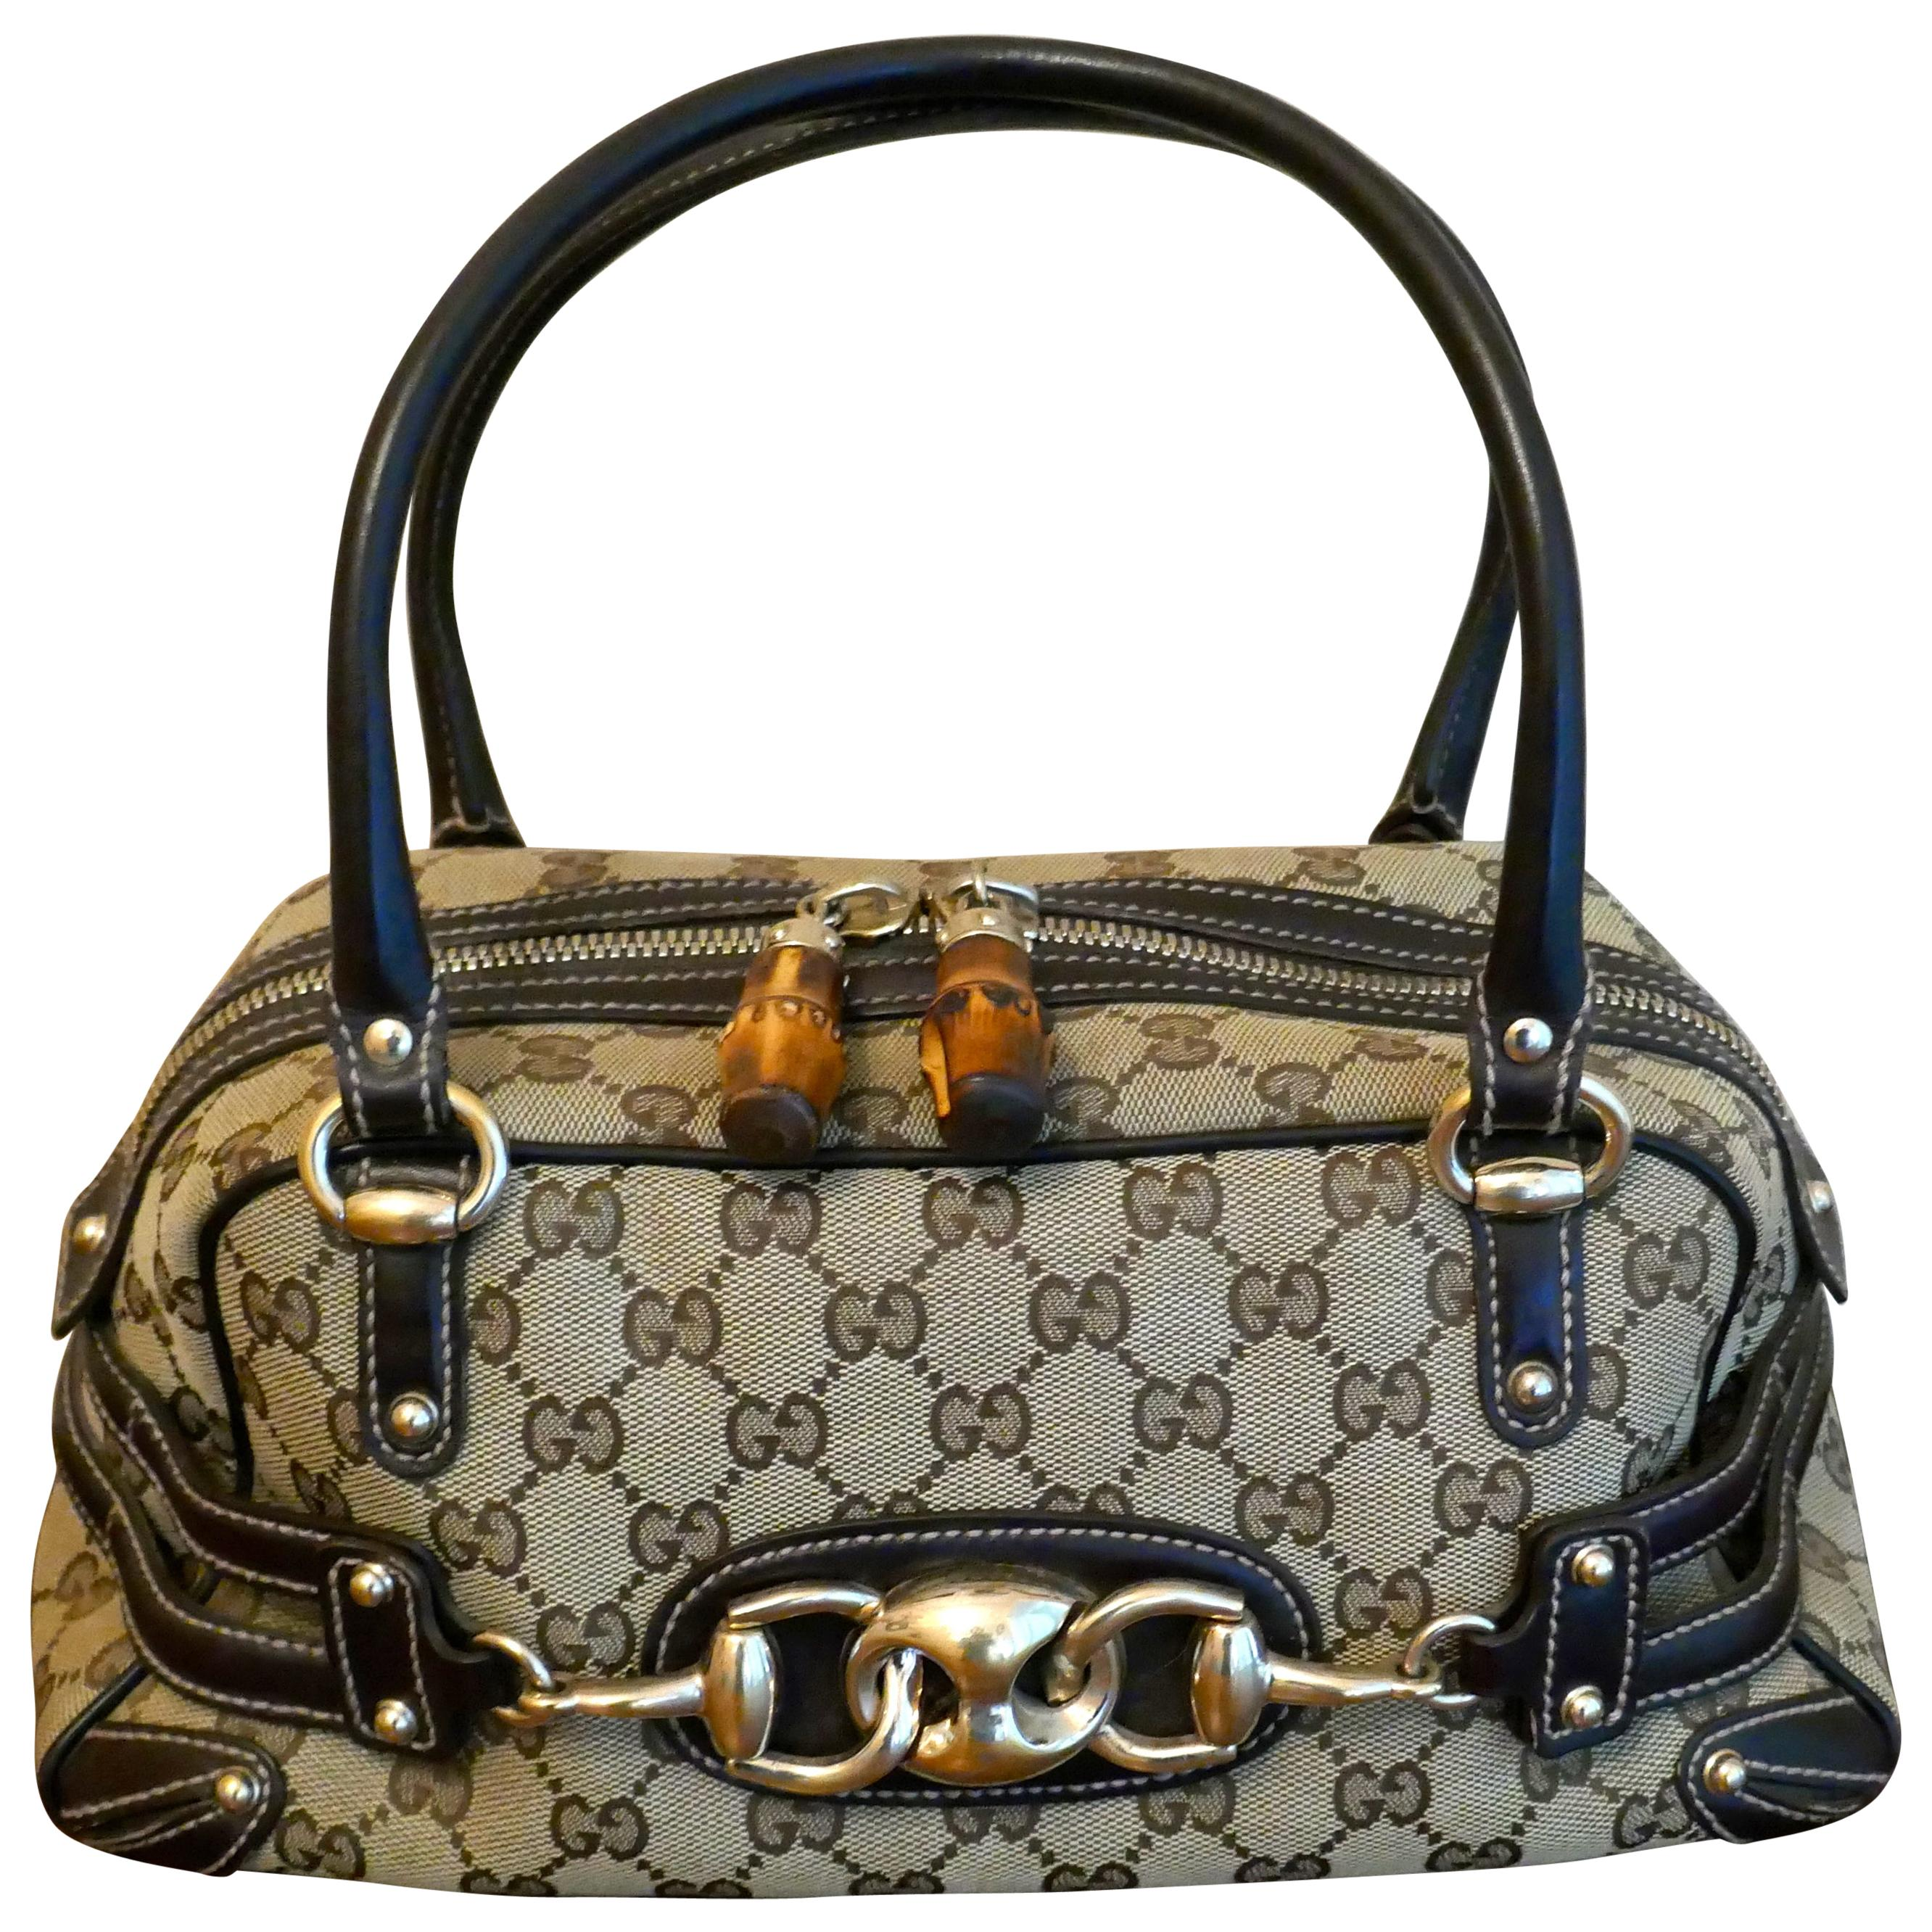 3d97f70a347f Vintage Gucci Handbags and Purses - 2,046 For Sale at 1stdibs